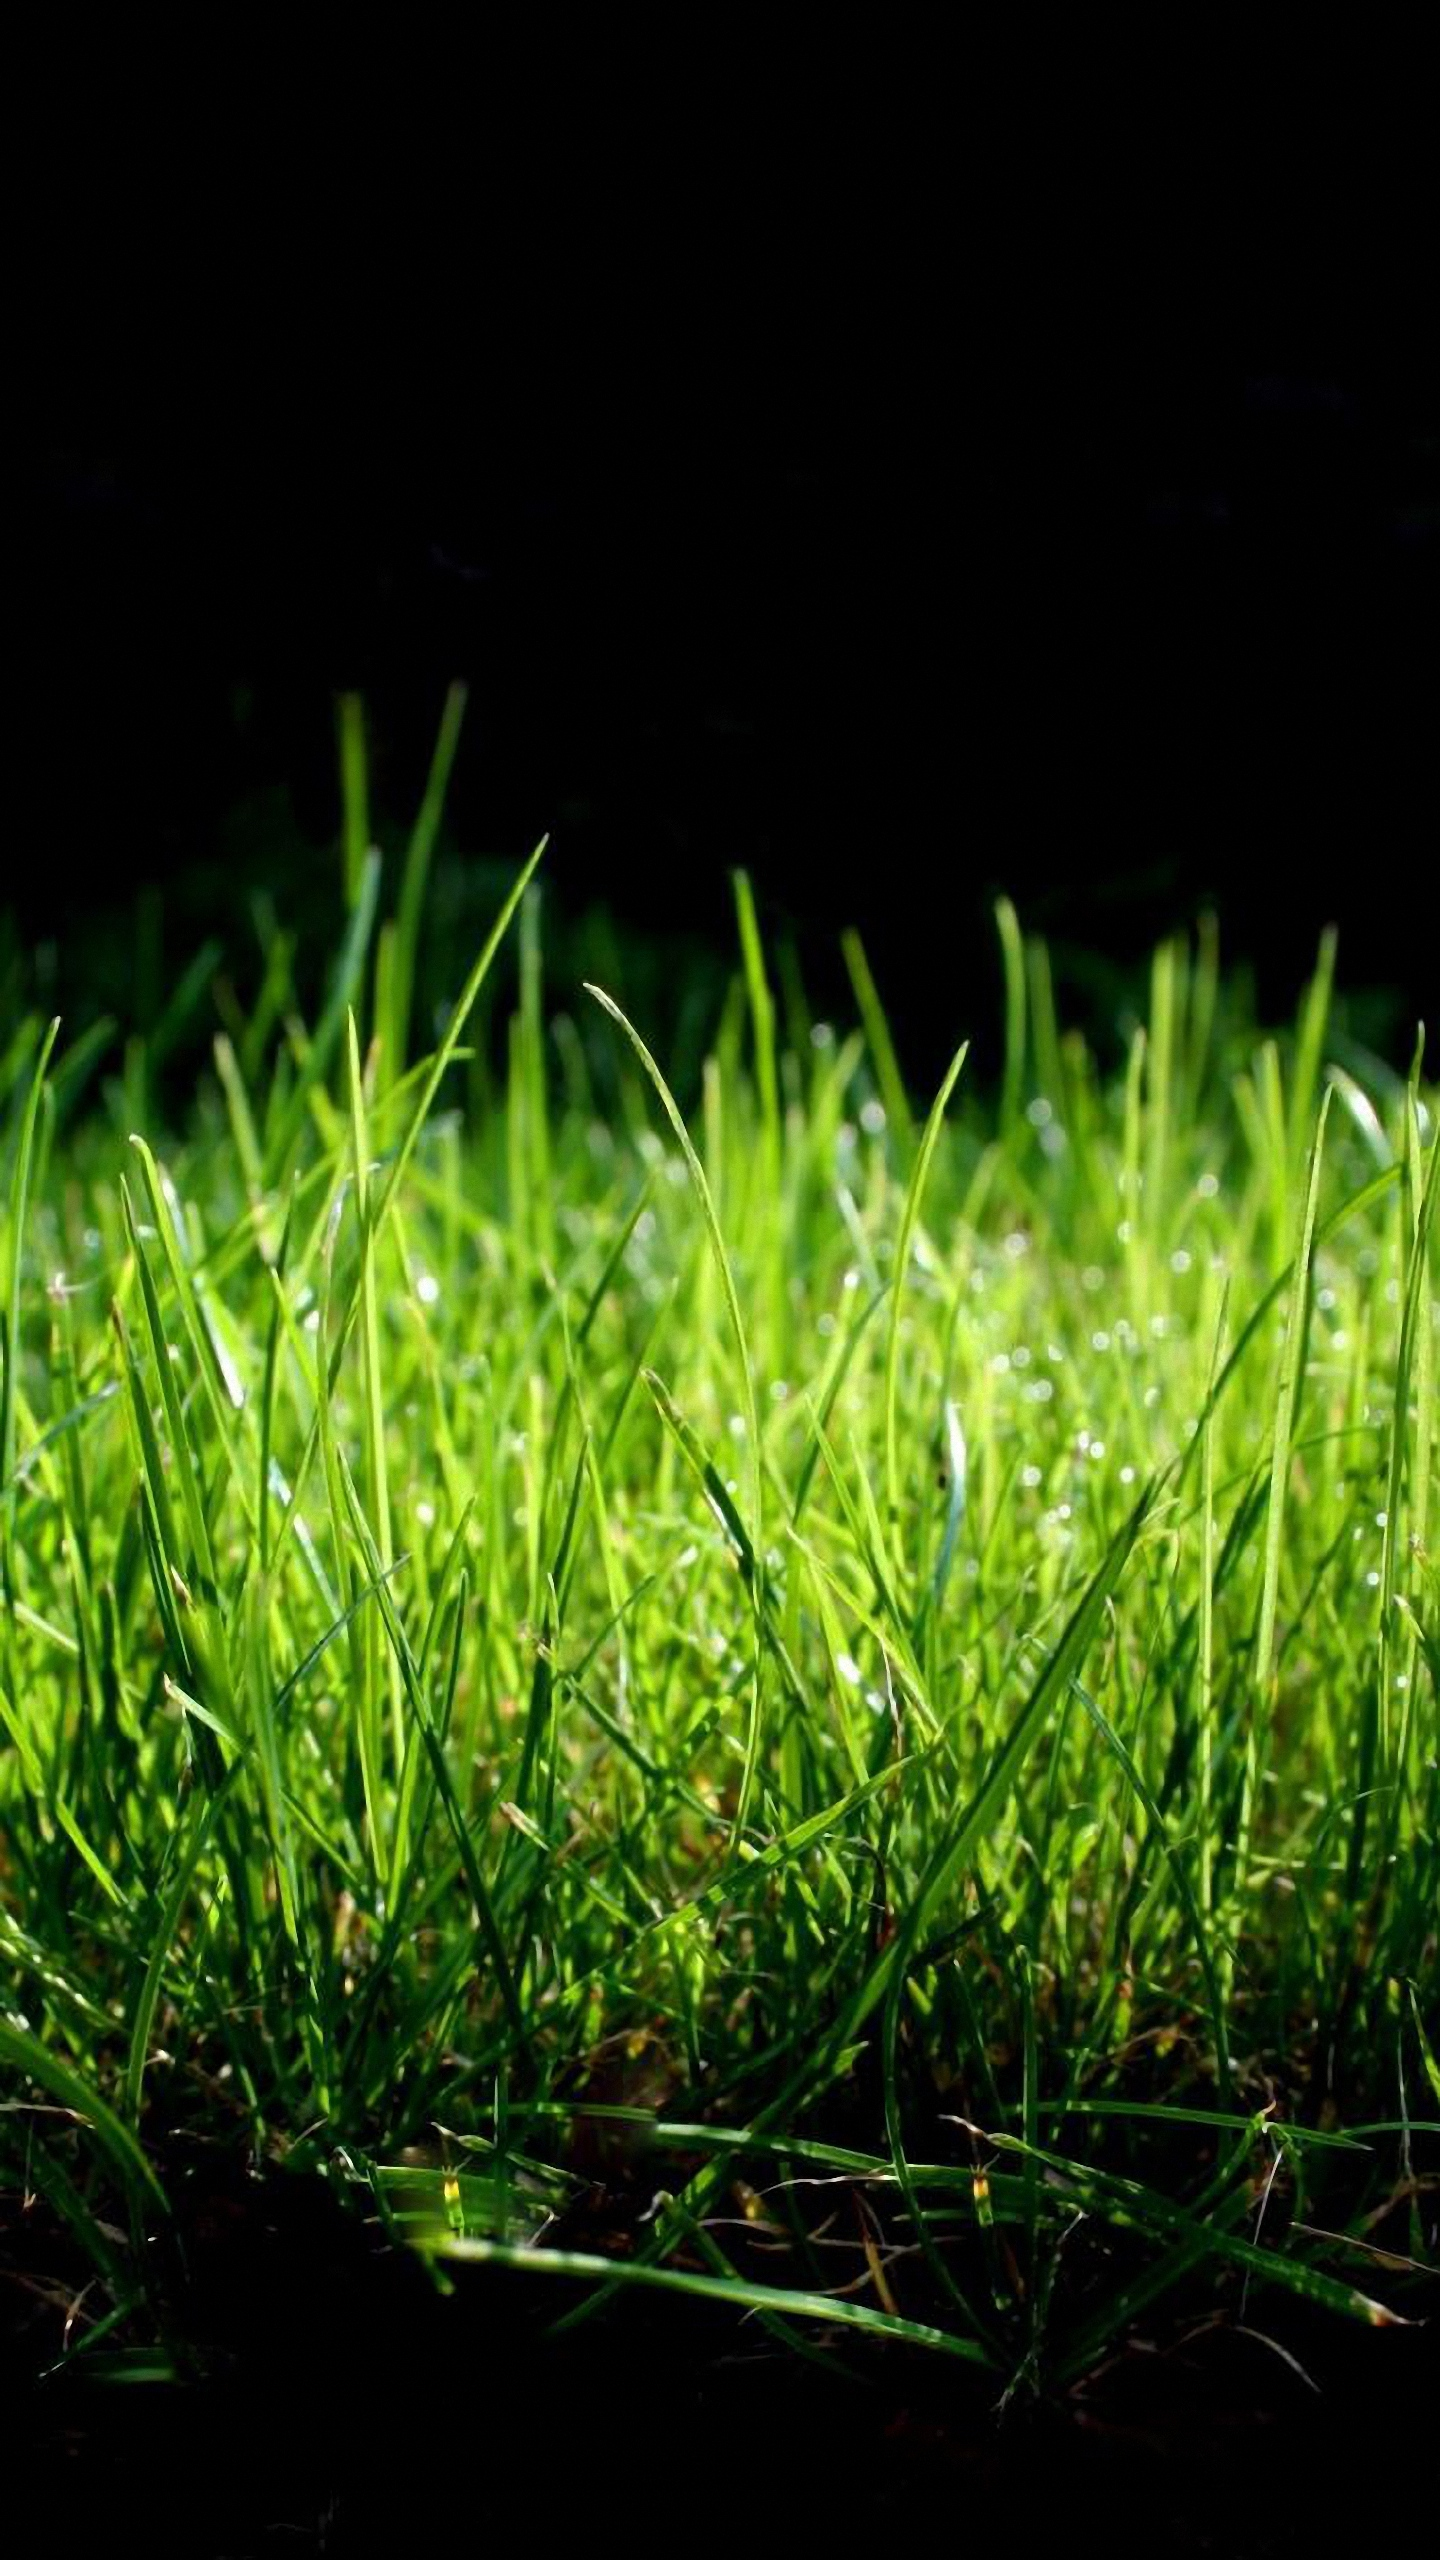 lg g3 wallpapers 1440x2560 quad hd green grass 1440x2560